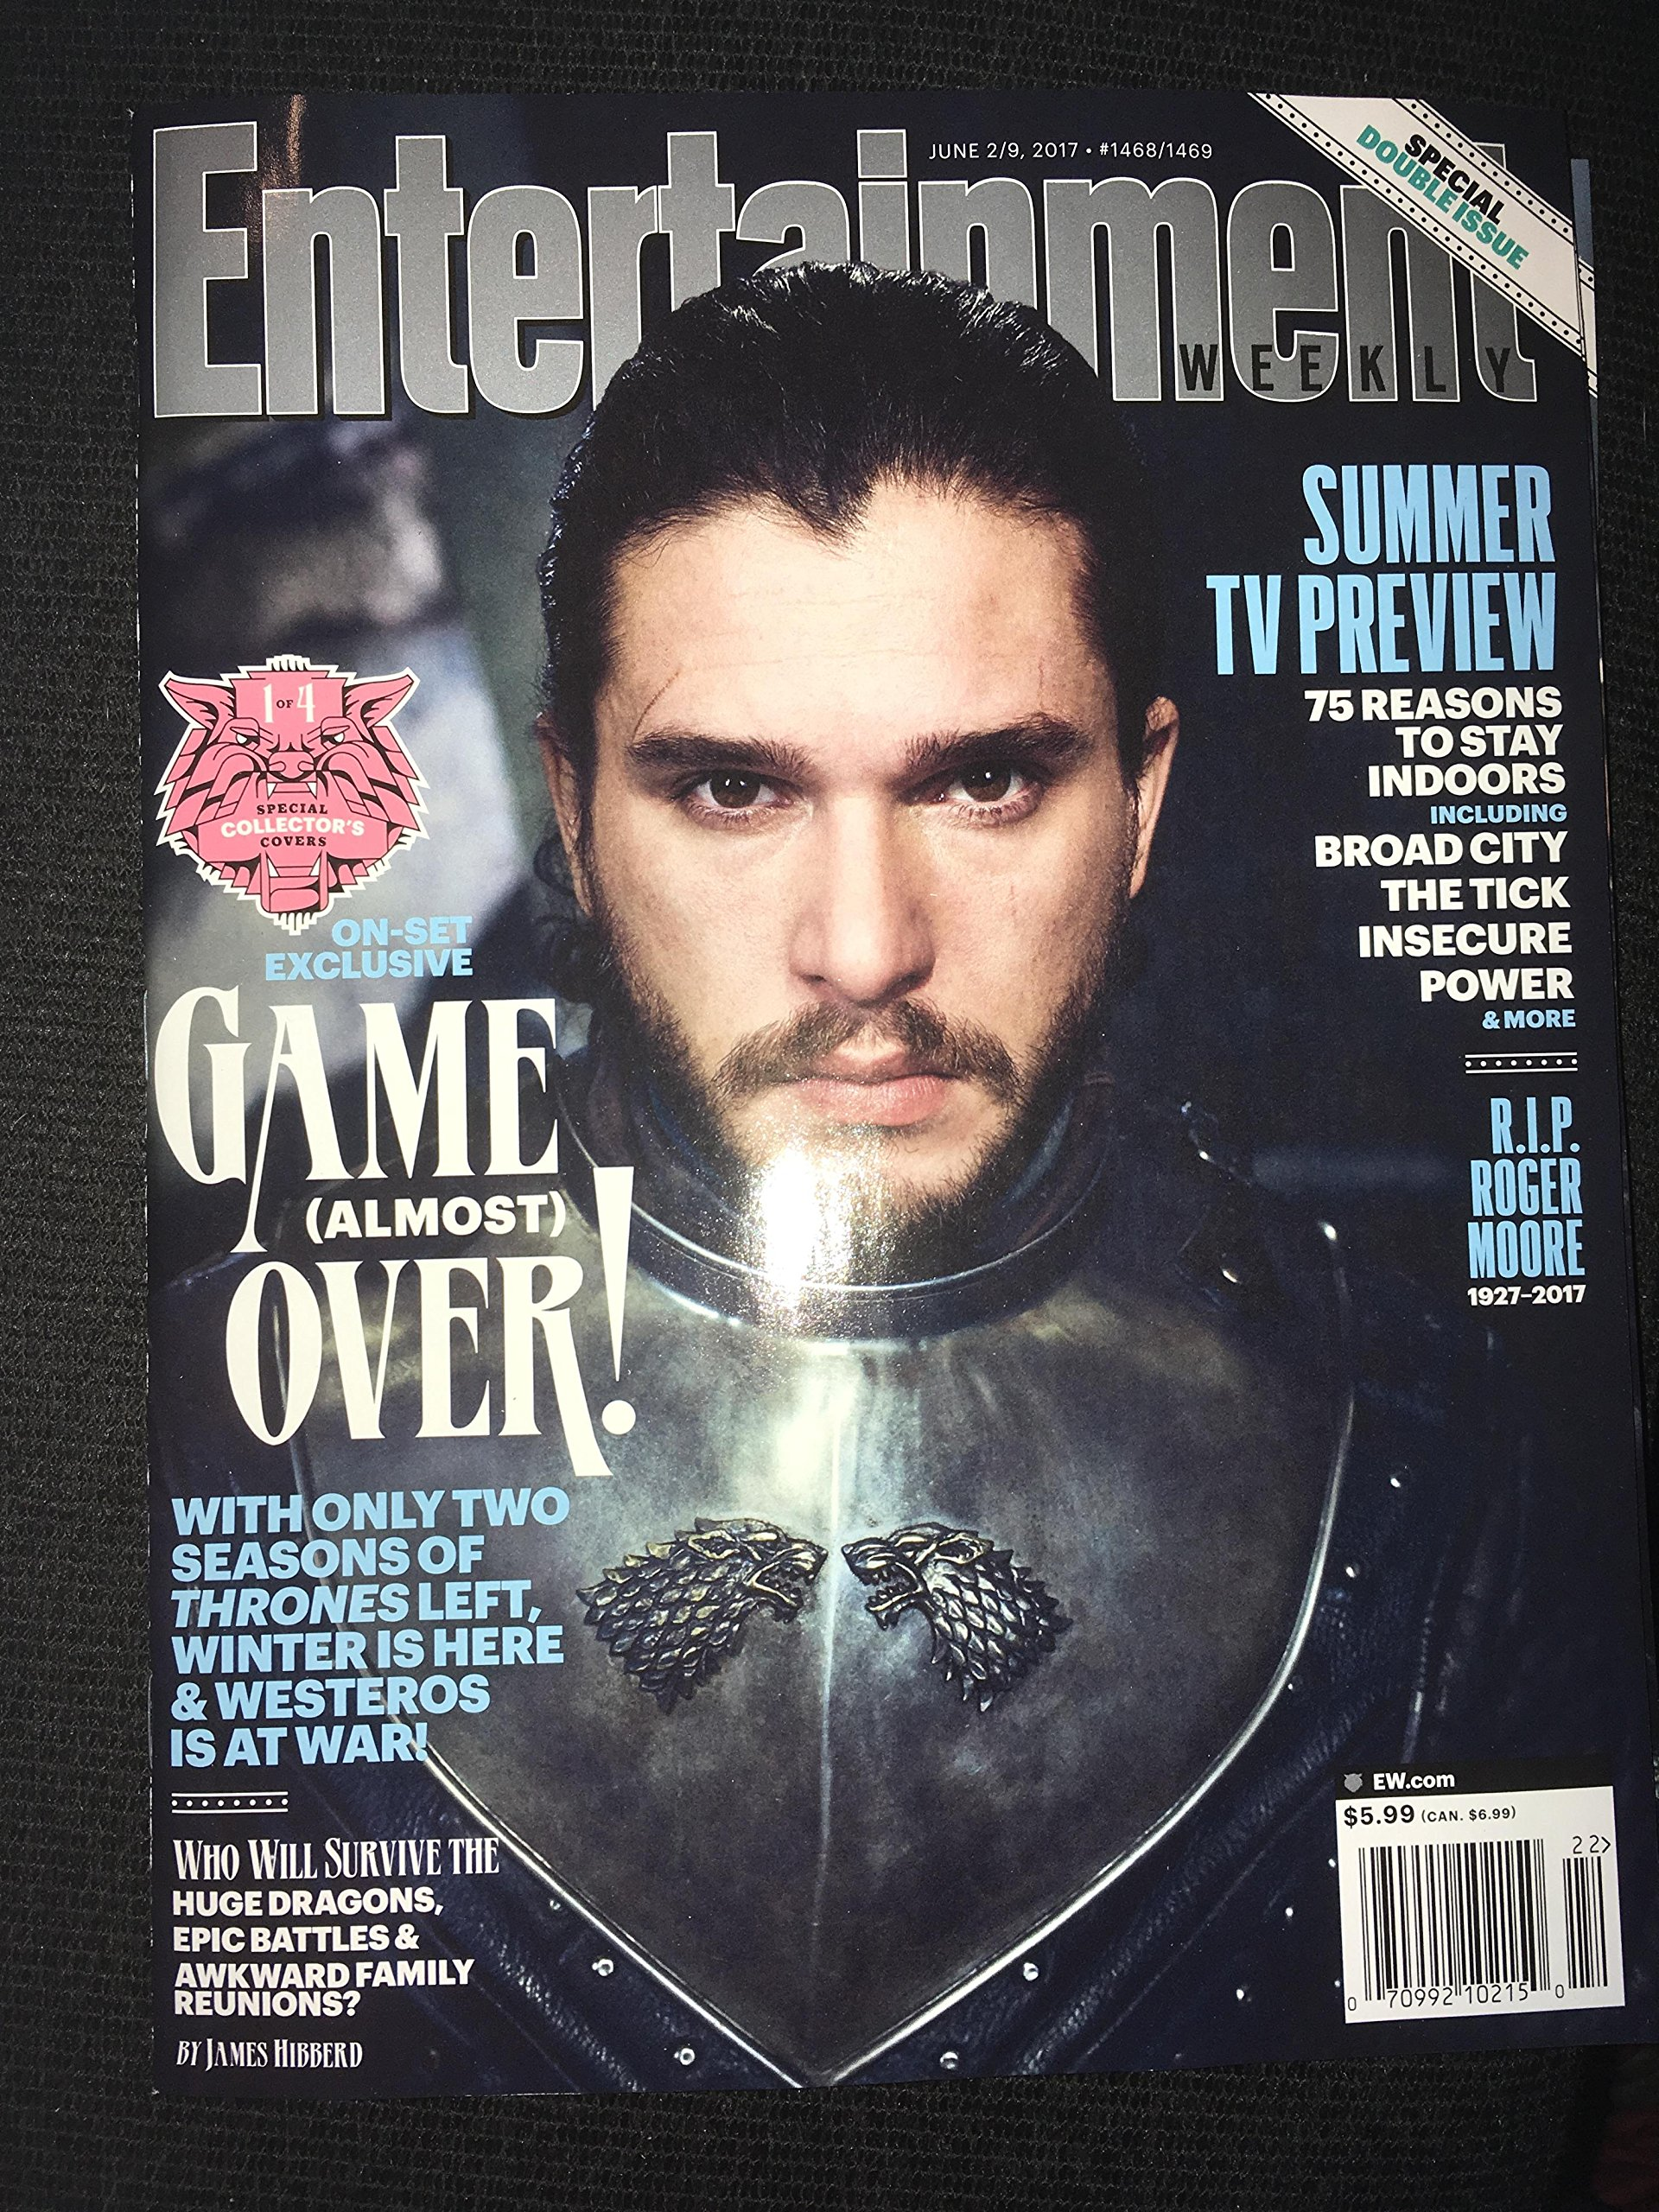 Game of thrones season 7 preview Entertainment weekly all 4 collectors magazines june 2017 pdf